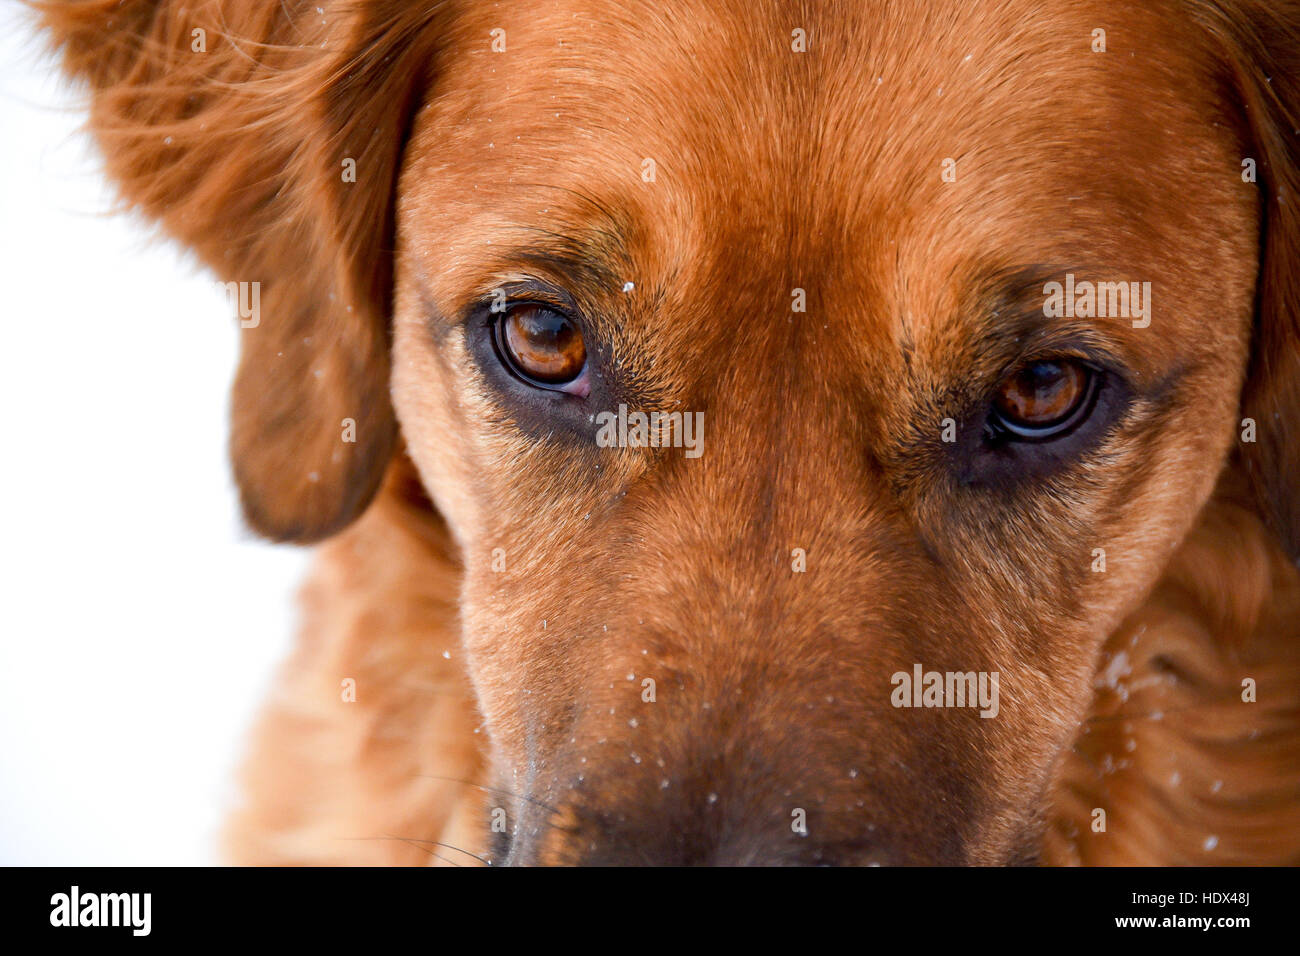 The Focused Gaze In The Face Of A Dog Cropped Close With White Stock